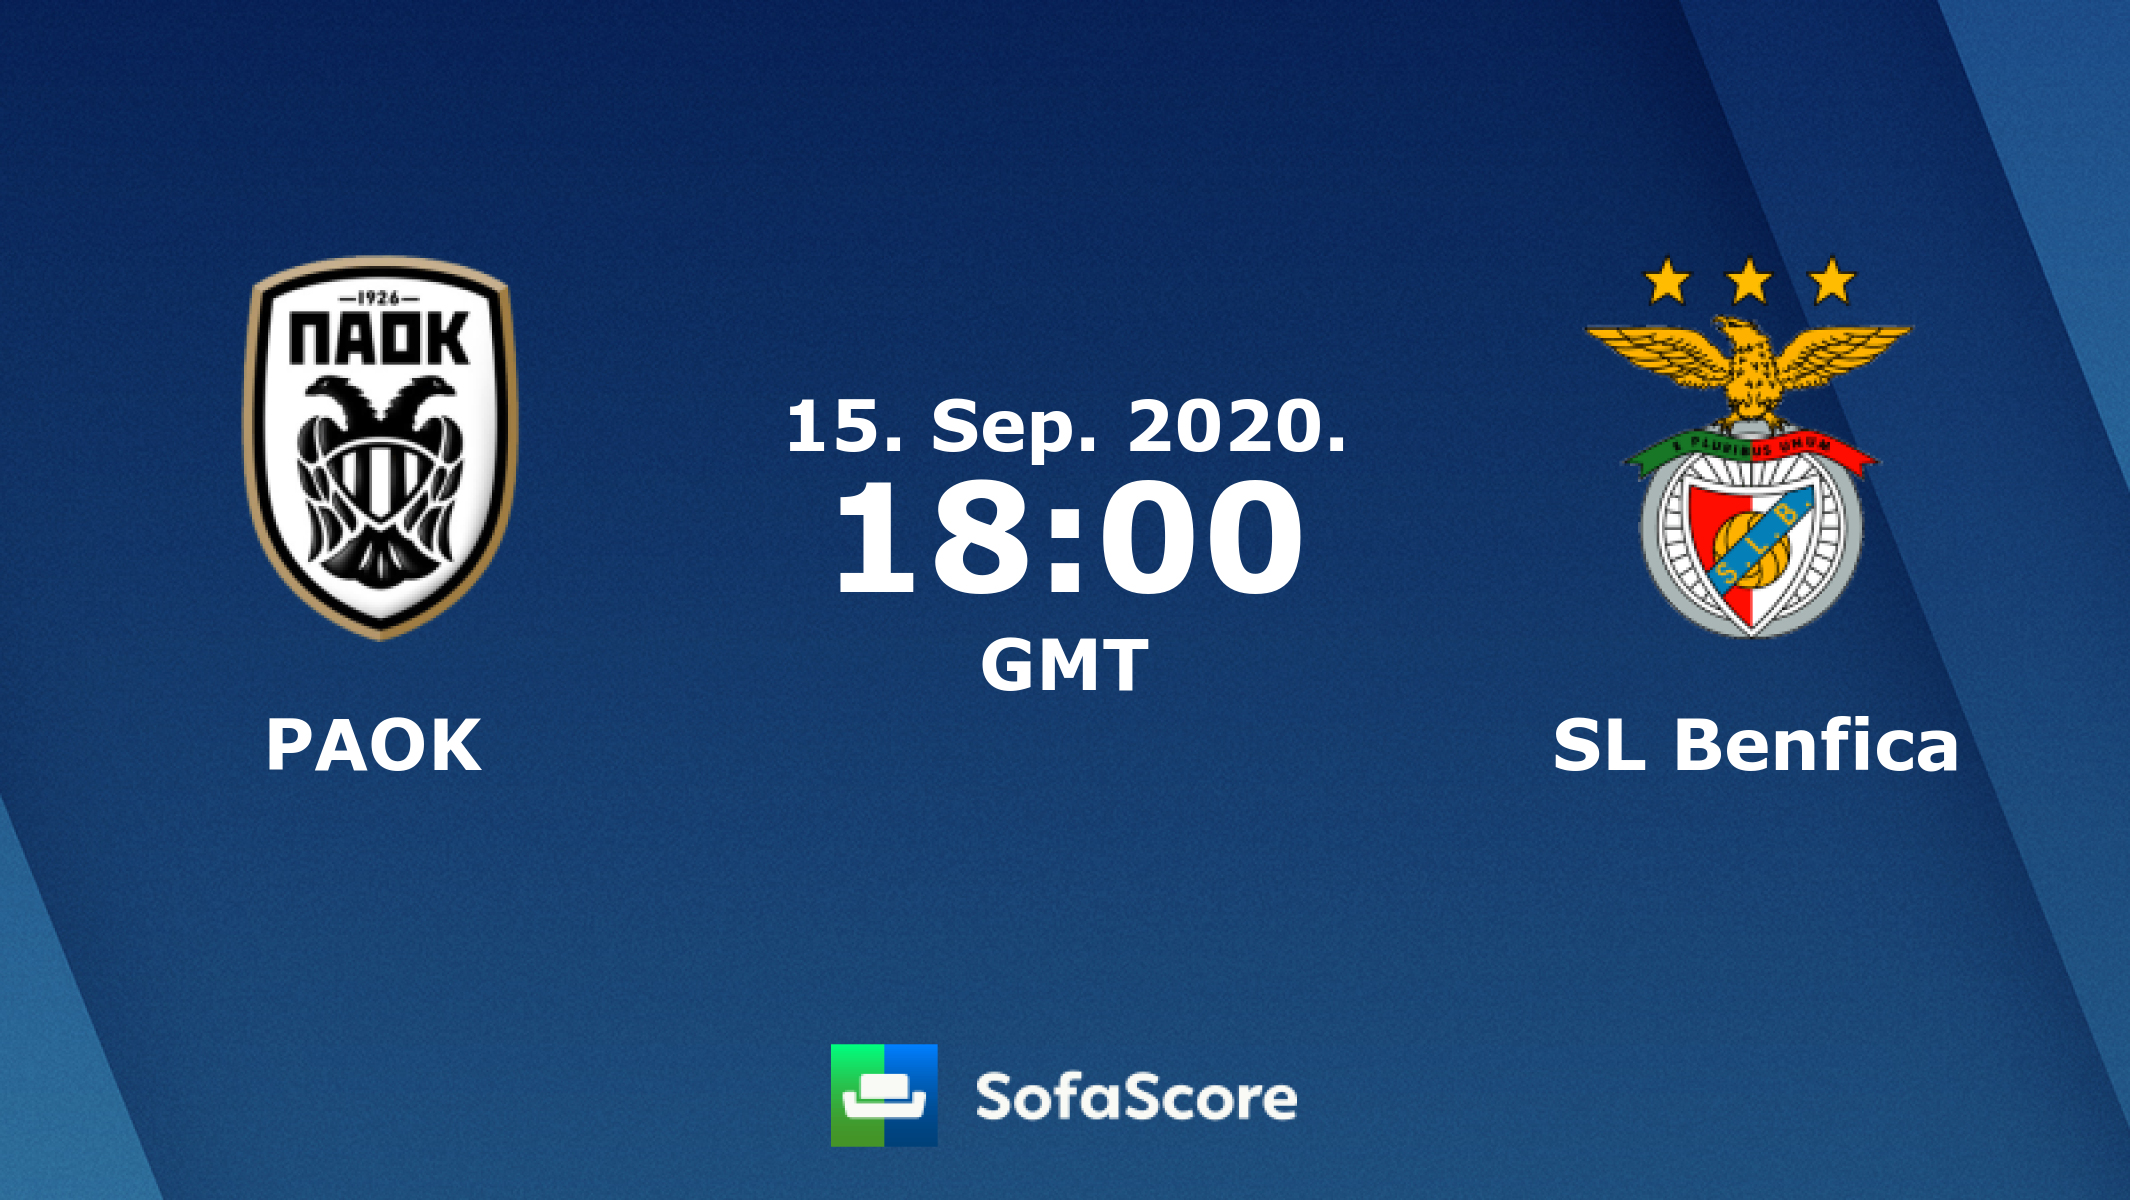 PAOK SL Benfica live score, video stream and H2H results - SofaScore